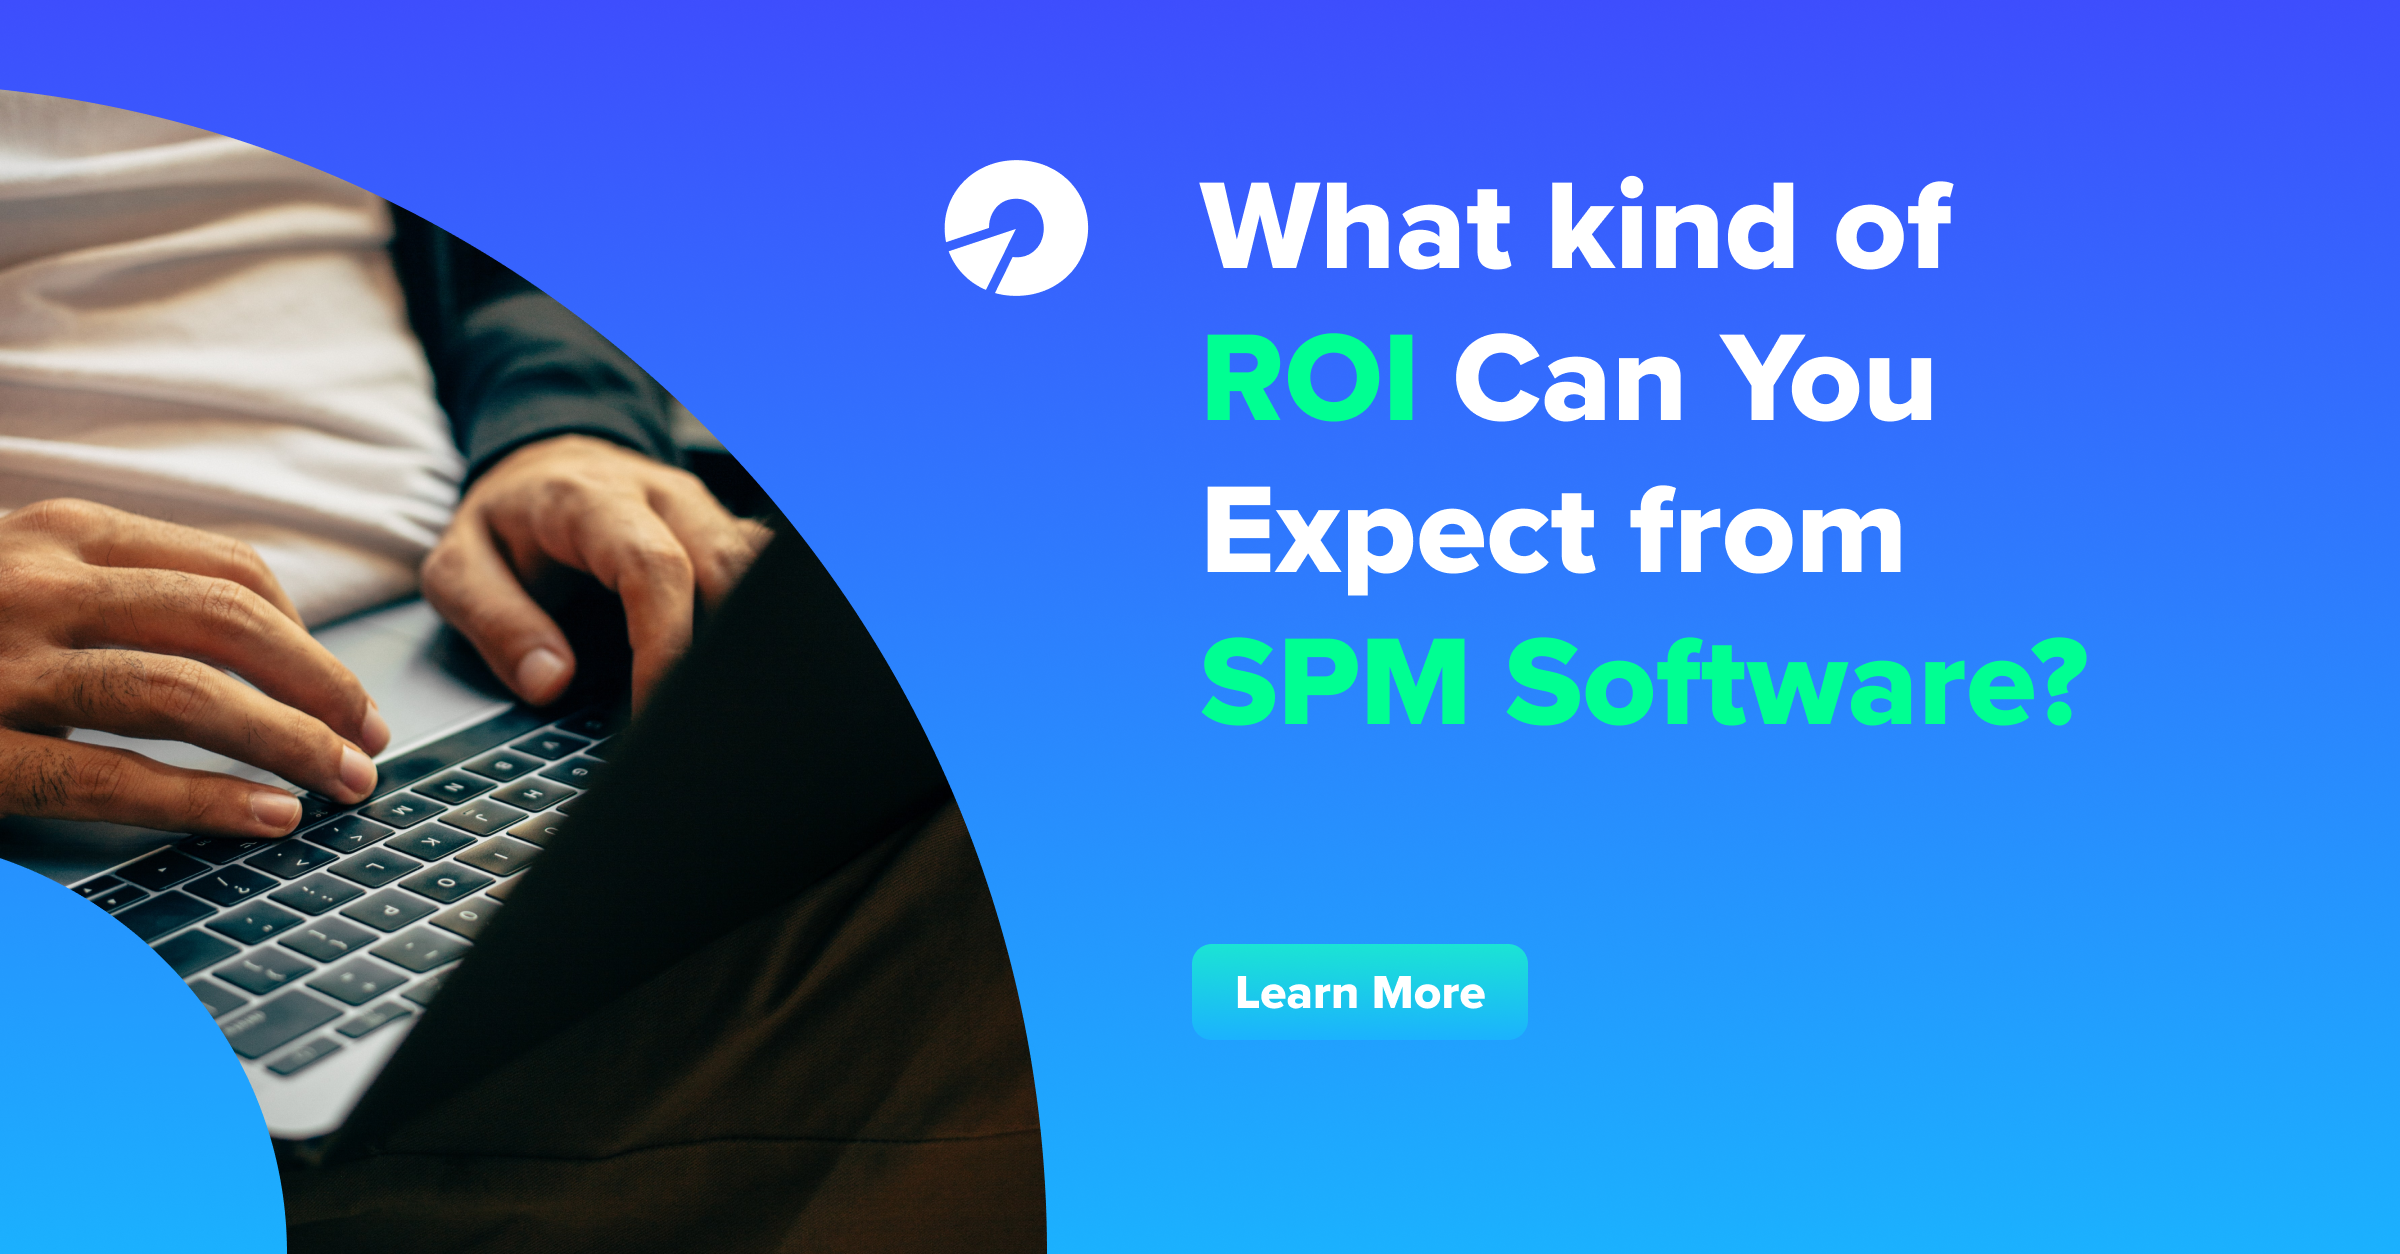 What kind of ROI Can You Expect from SPM?